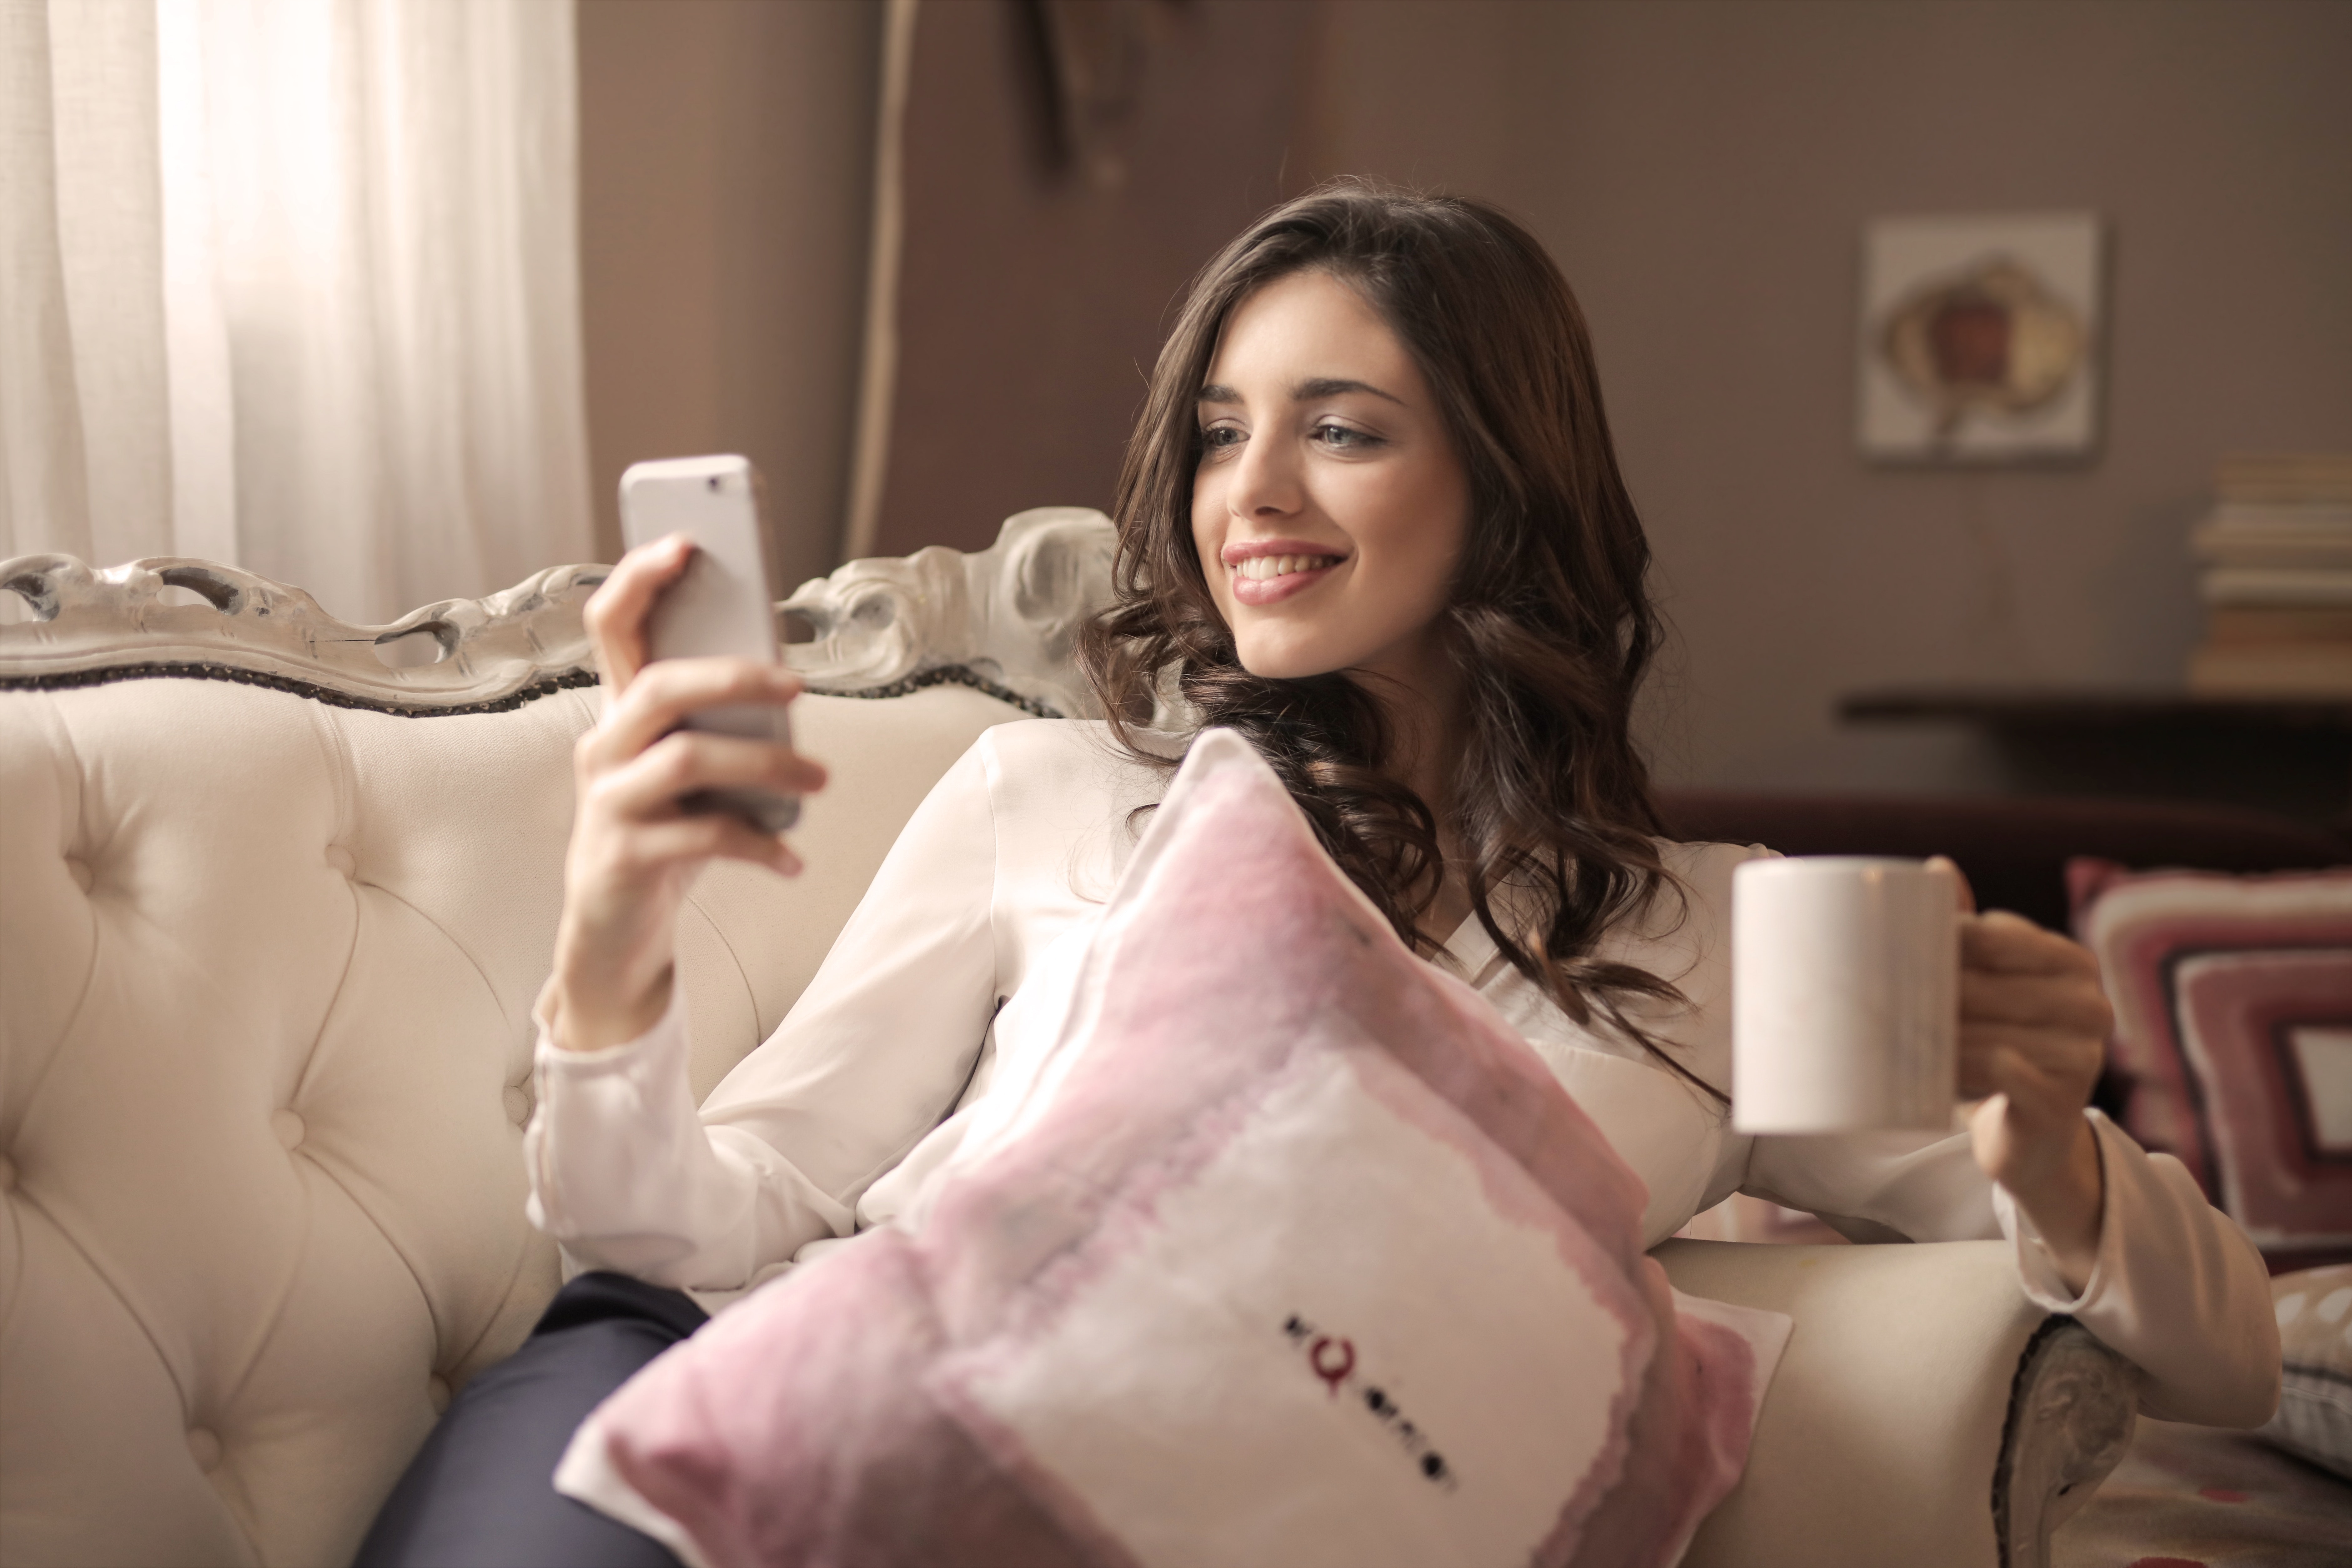 Woman in white long-sleeved shirt holding smartphone sitting on tufted sofa photo